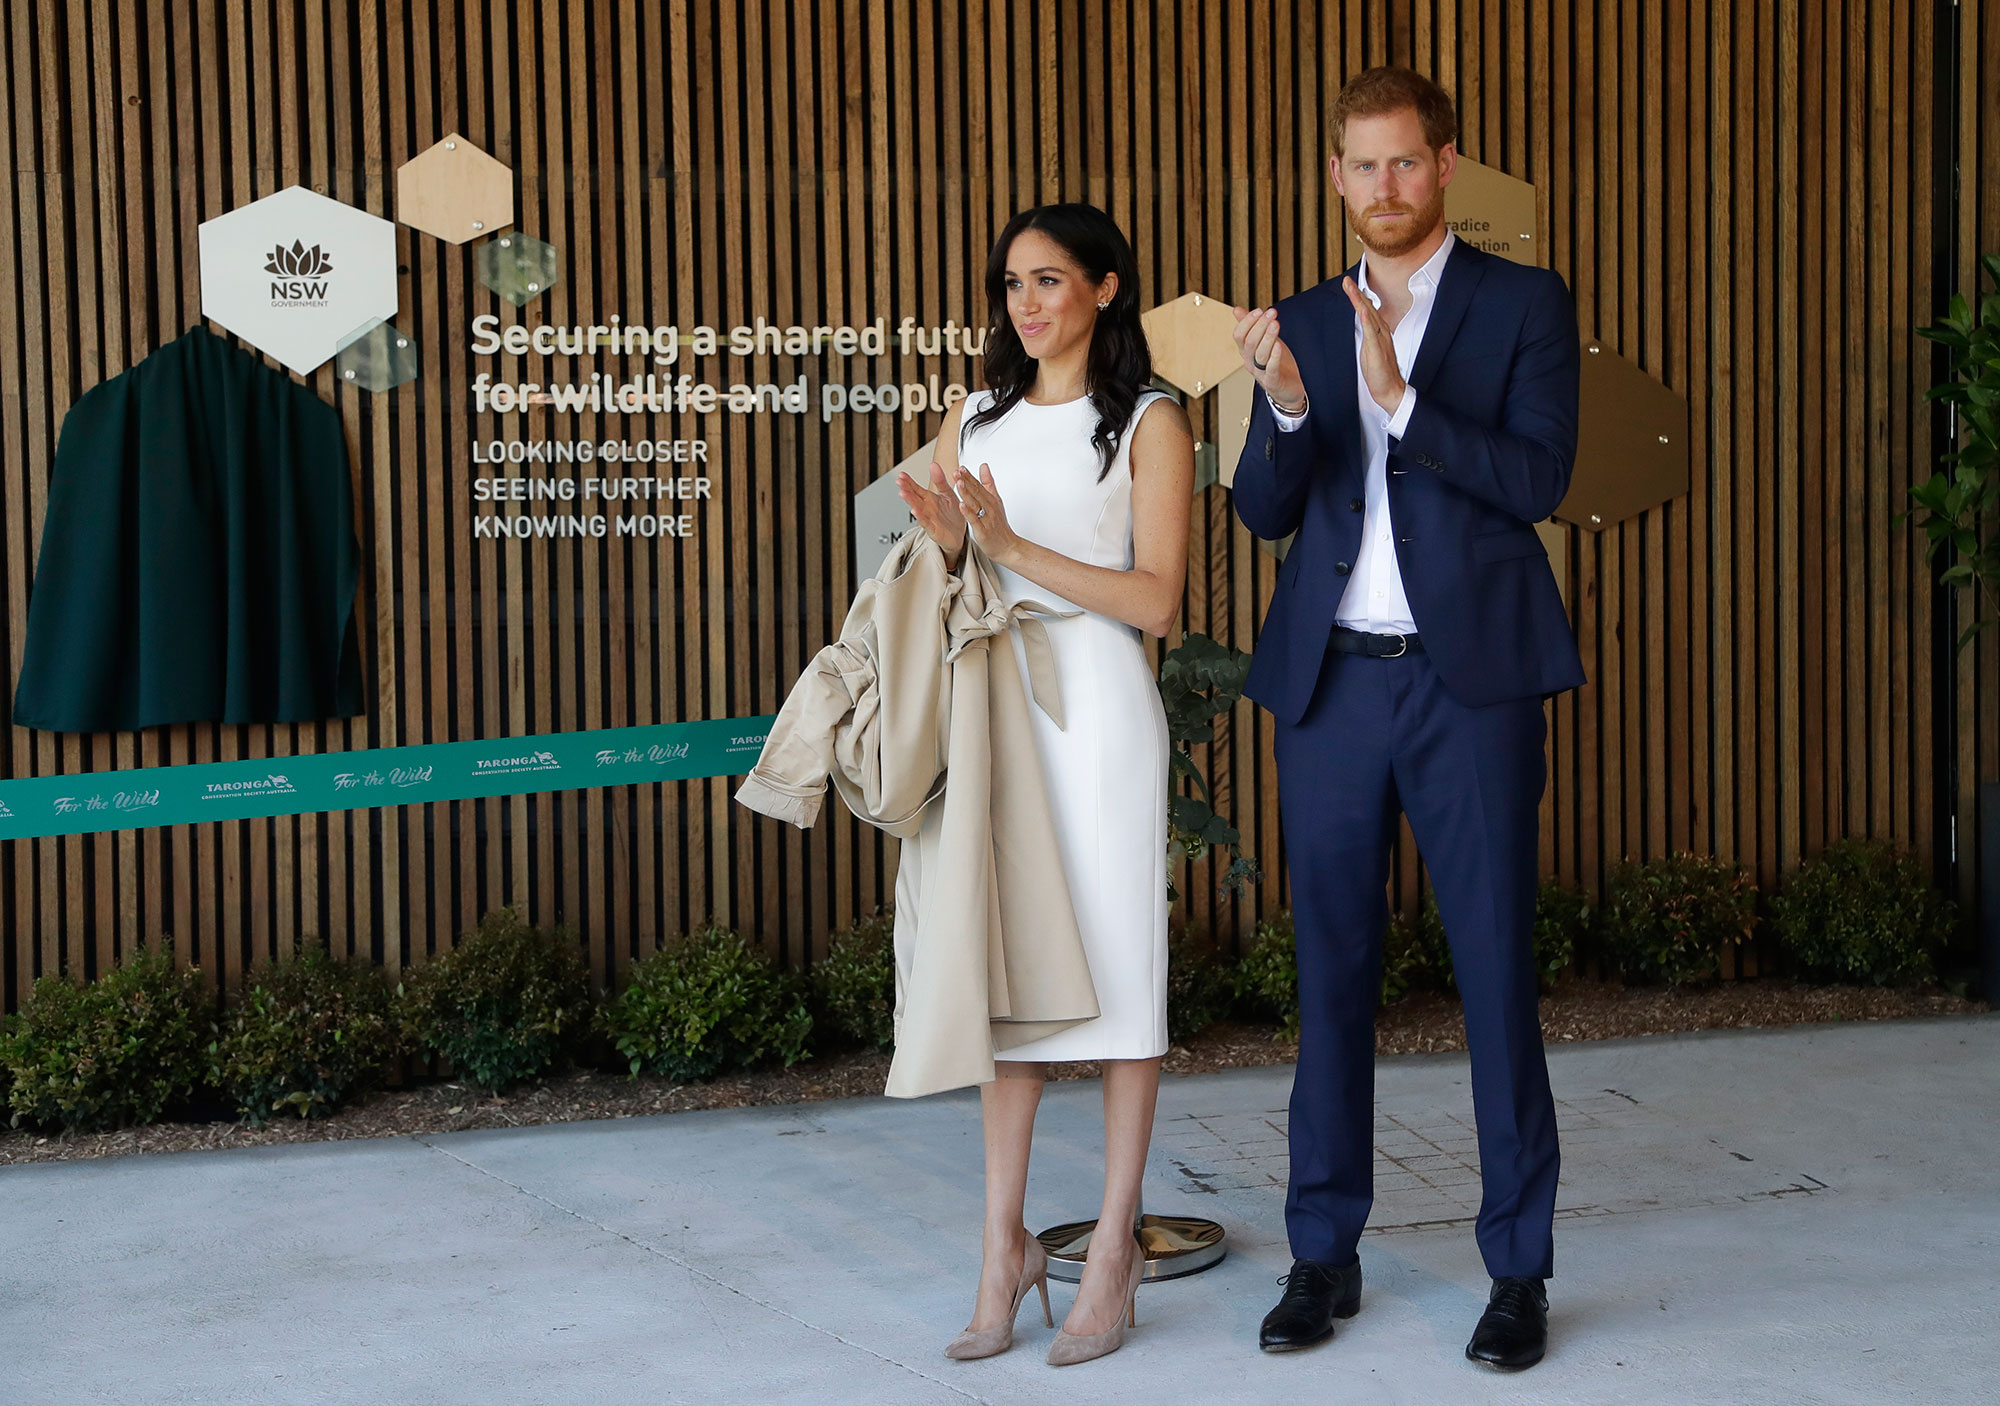 "<div class=""meta image-caption""><div class=""origin-logo origin-image none""><span>none</span></div><span class=""caption-text"">Prince Harry and Meghan, Duchess of Sussex react during a ceremony at Taronga Zoo in Sydney, Australia, Tuesday, Oct. 16, 2018. (Kirsty Wigglesworth, Pool/AP Photo)</span></div>"